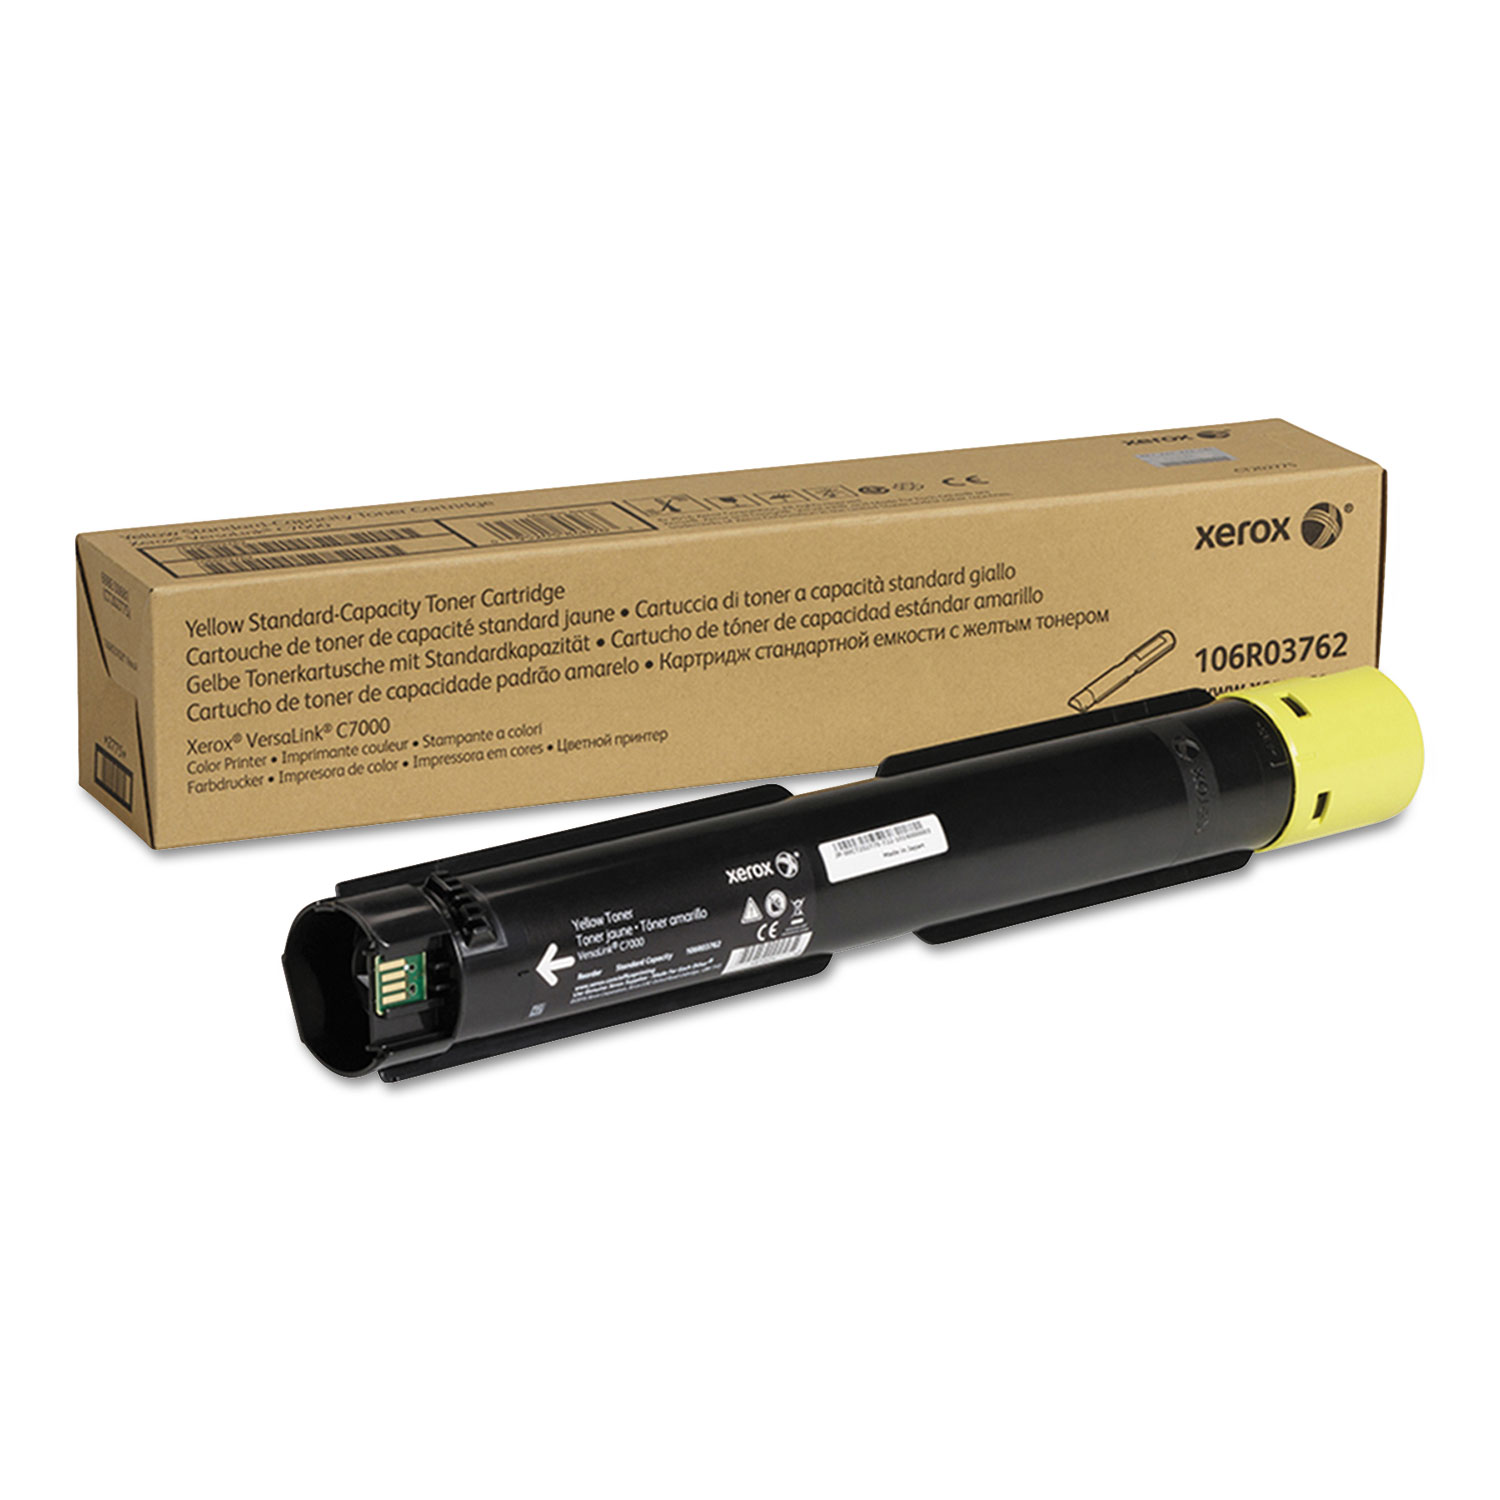 106R03762 Toner, 3300 Page-Yield, Yellow